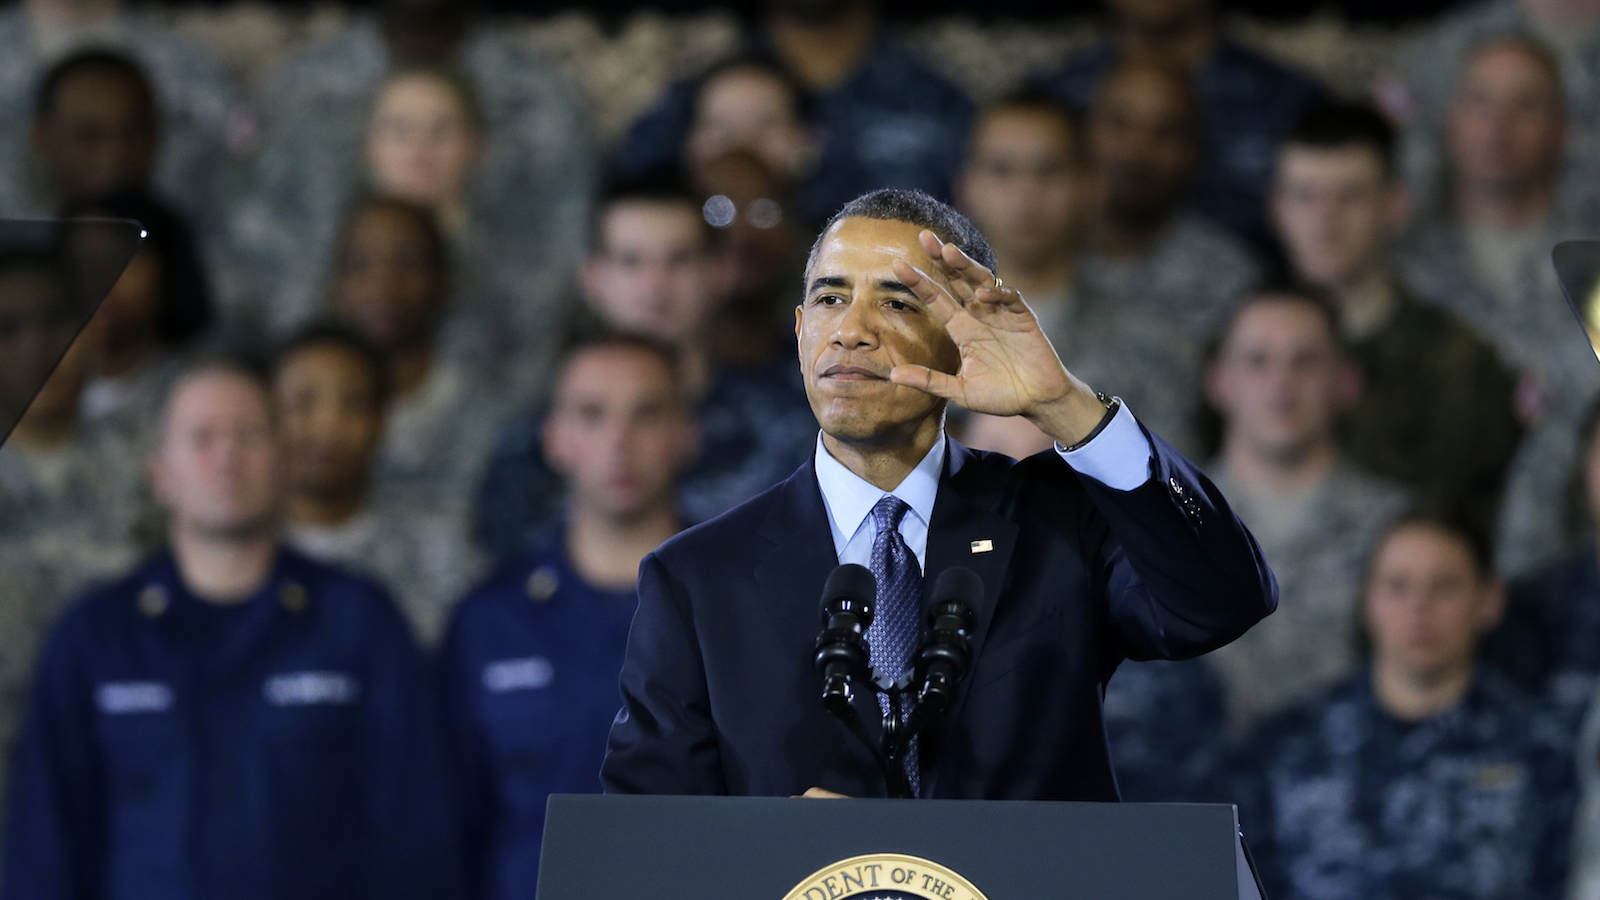 President Barack Obama waves as he finishes speaking to military members and families Monday, Dec. 15, 2014, at Joint Base McGuire-Dix-Lakehurst, in Wrightstown, N.J. President Barack Obama said every American who has served in Afghanistan should be proud of what they've accomplished.  Obama is observing the end of combat operations in Afghanistan by visiting U.S. troops at New Jersey's Joint Base McGuire-Dix-Lakehurst. The base has been a launching point for deployments to Afghanistan. (AP Photo/Mel Evans)